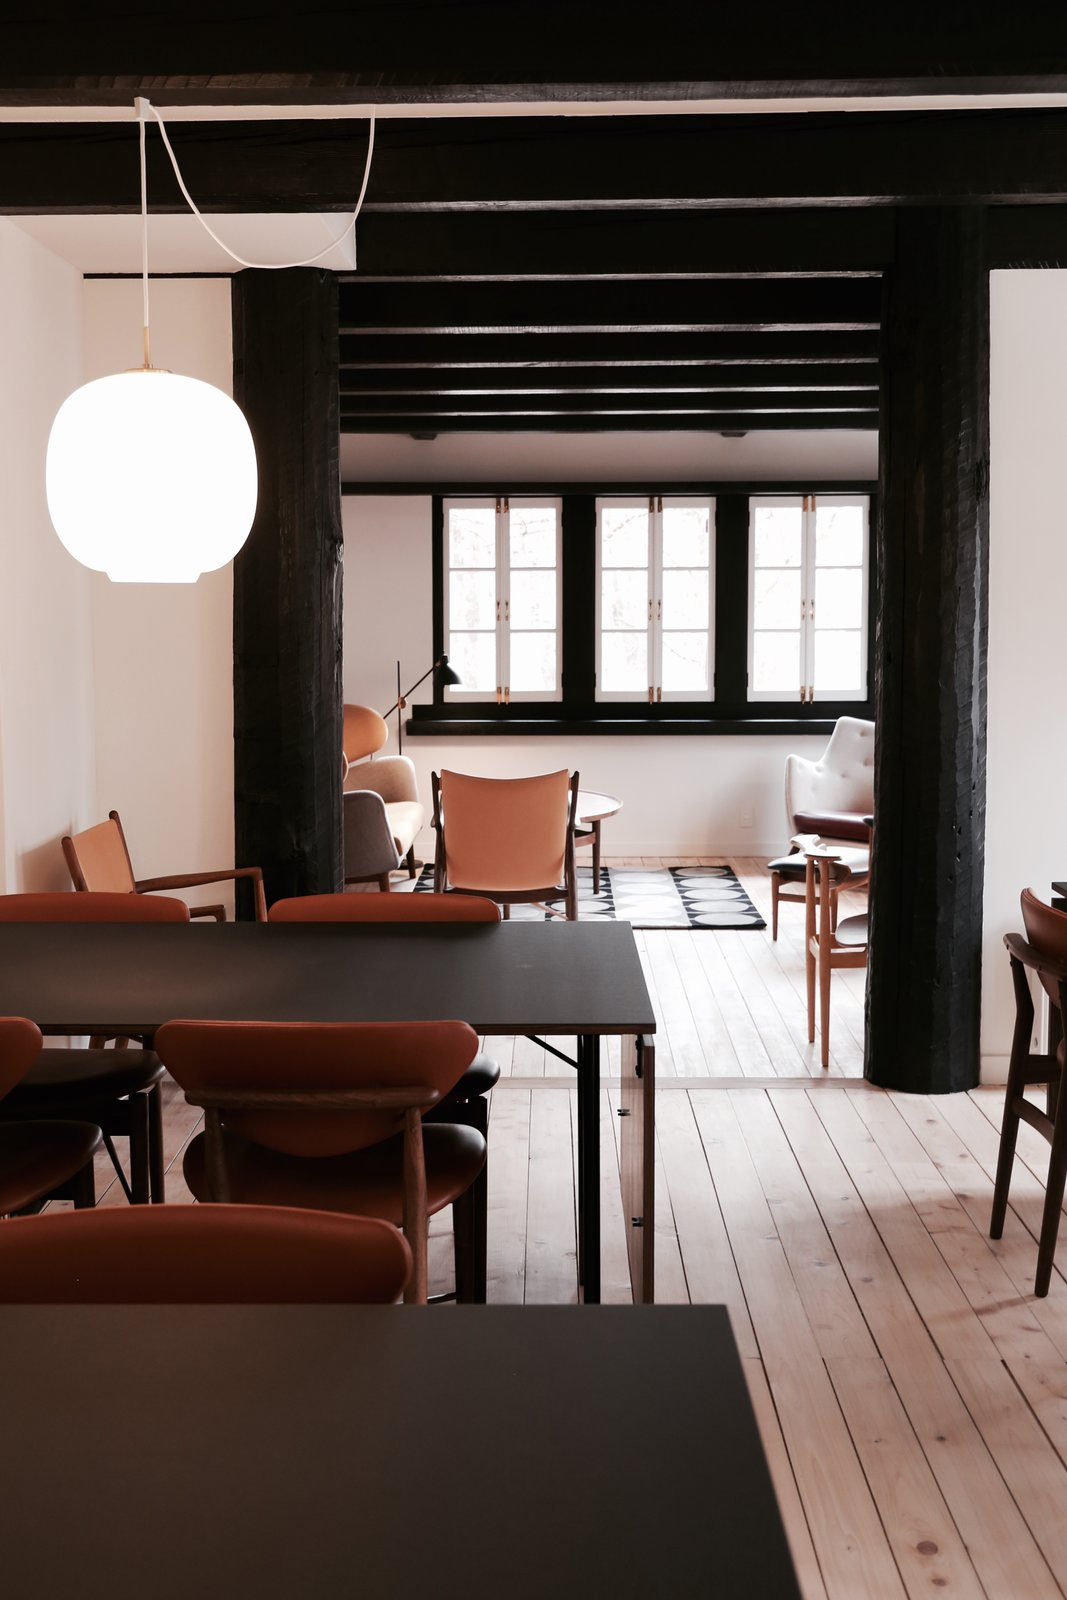 Dining Room, Table, Chair, and Pendant Lighting  Photo 2 of 5 in Finn Juhl Design Hotel Opens in Nagano, Japan